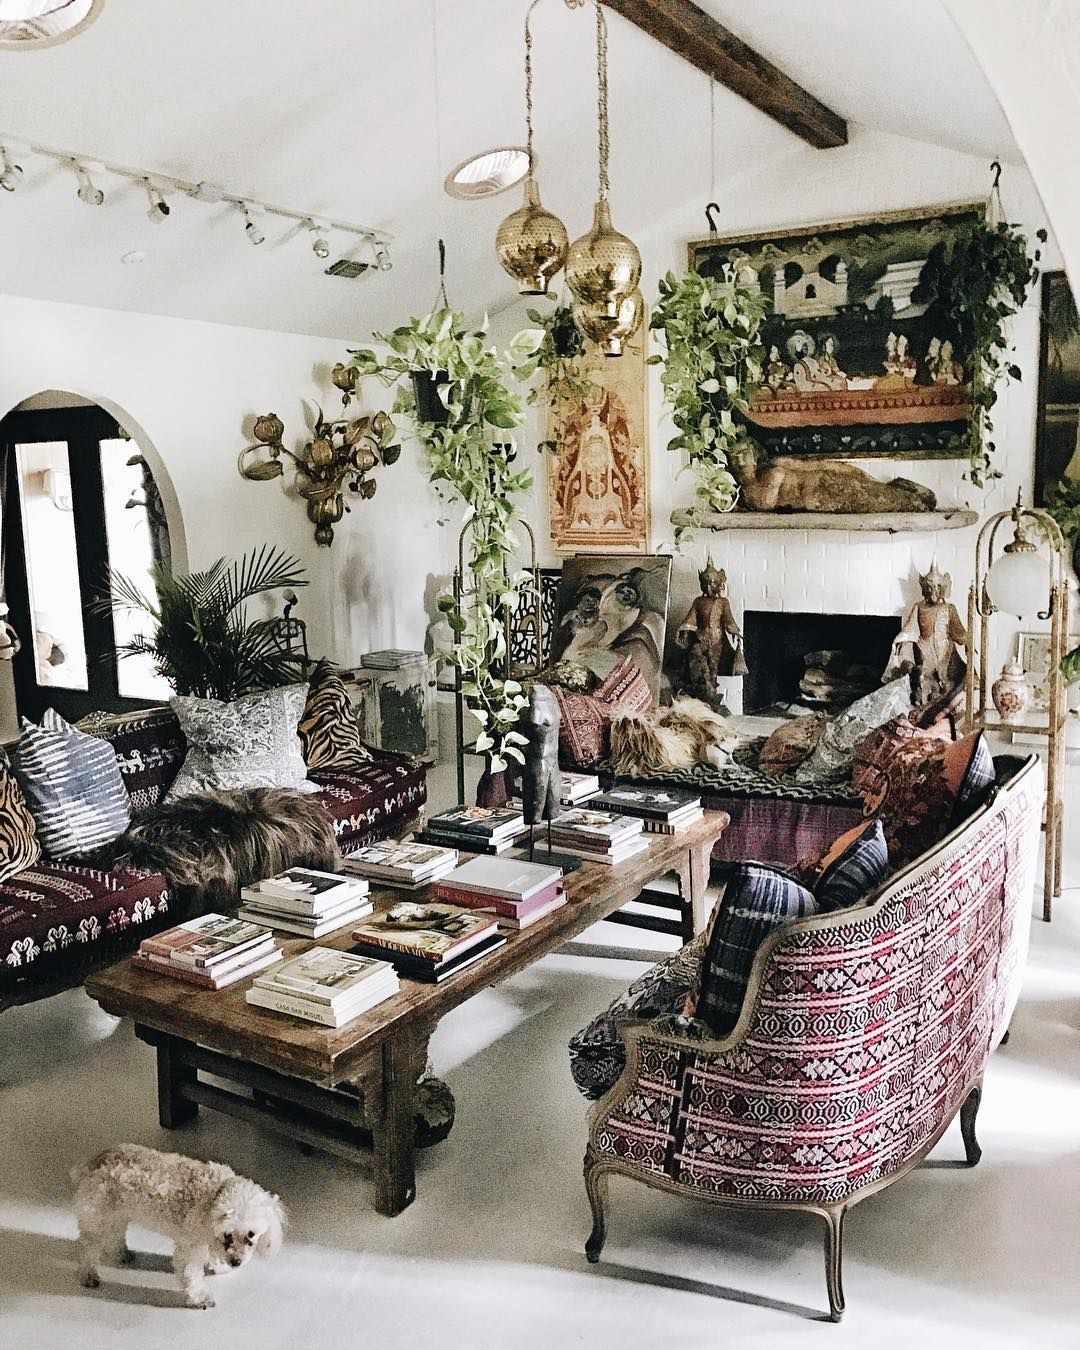 55 Best Home Decor Ideas: Summer Style!! Elegant Bohemian Chic!! Look At The Classic